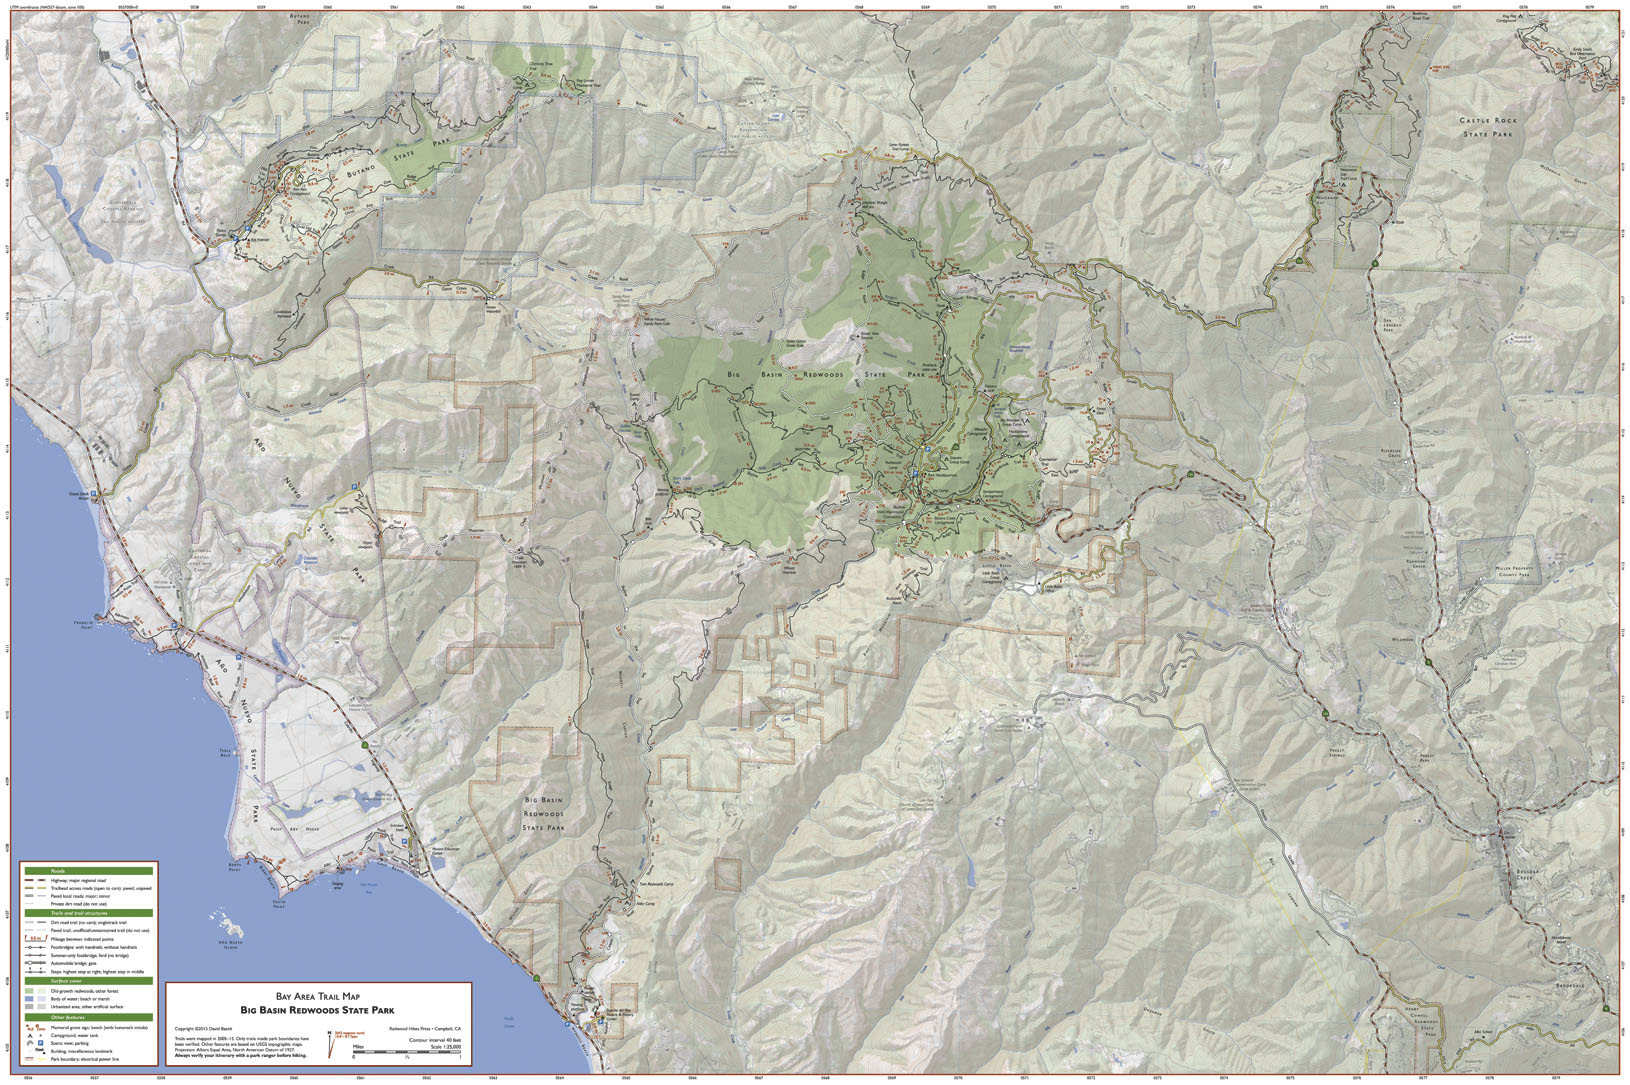 Bay Area Trail Map: Big Basin and Castle Rock